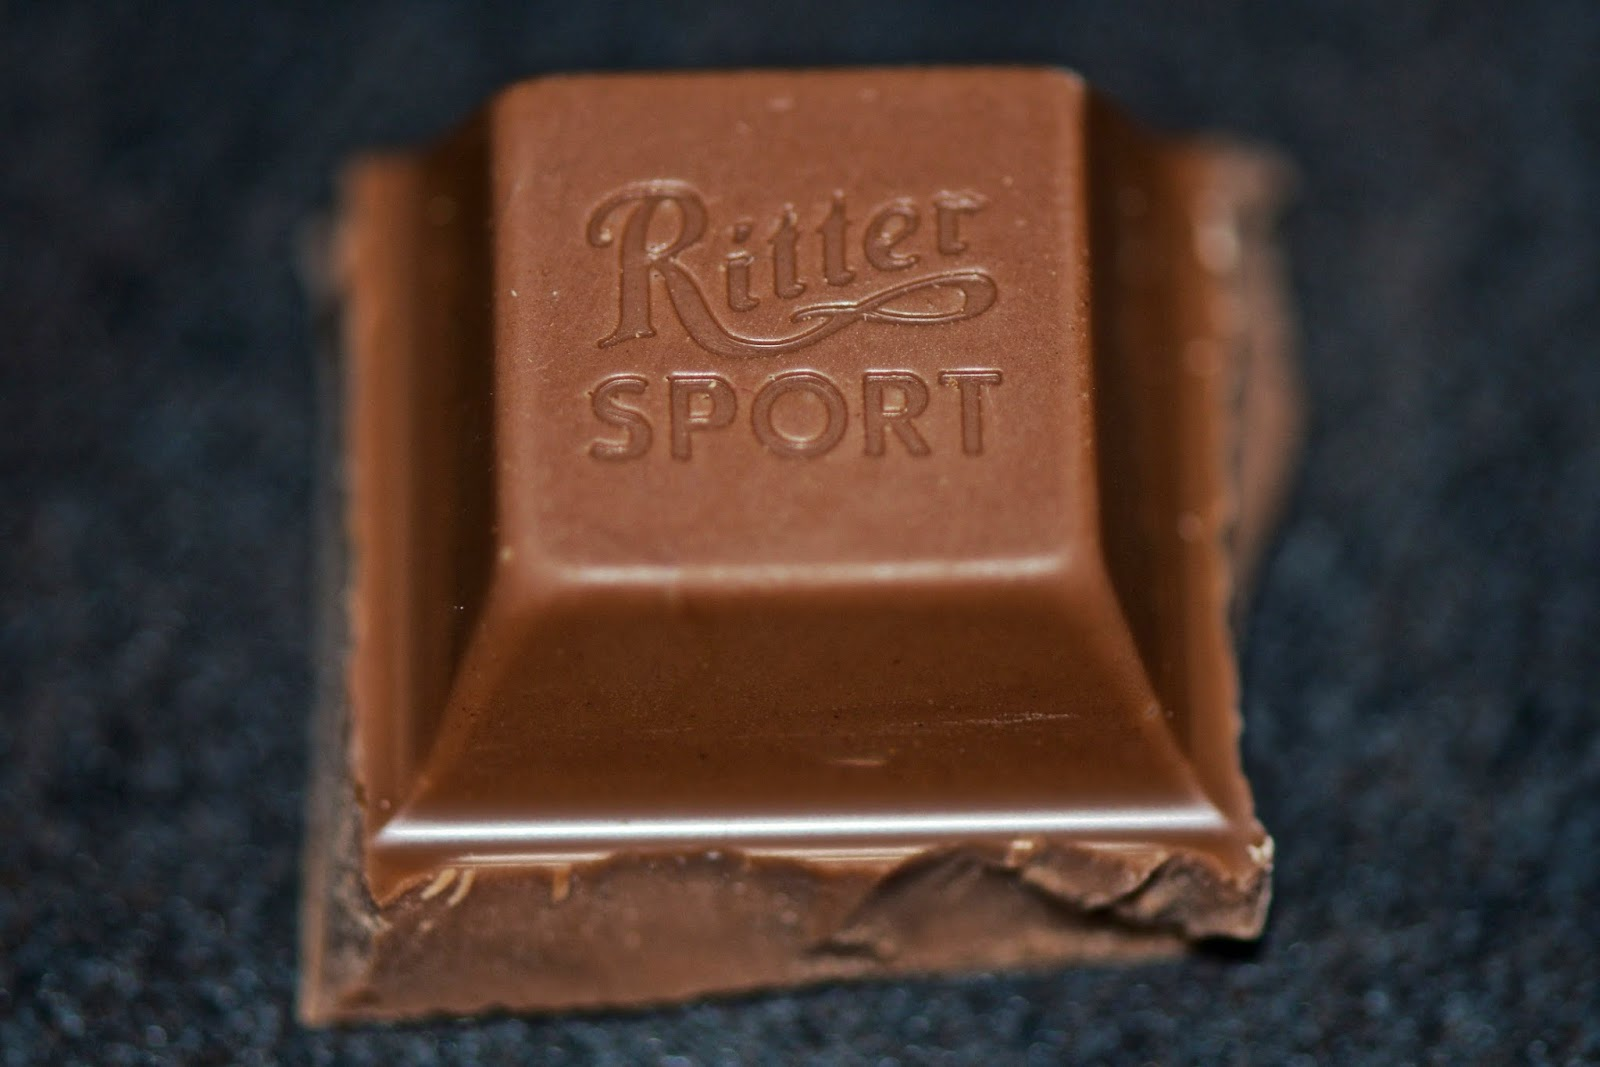 Chocolat au lait - Milk chocolate - dessert -cacao -cocoa - food - Ritter Sport Alpine Milk